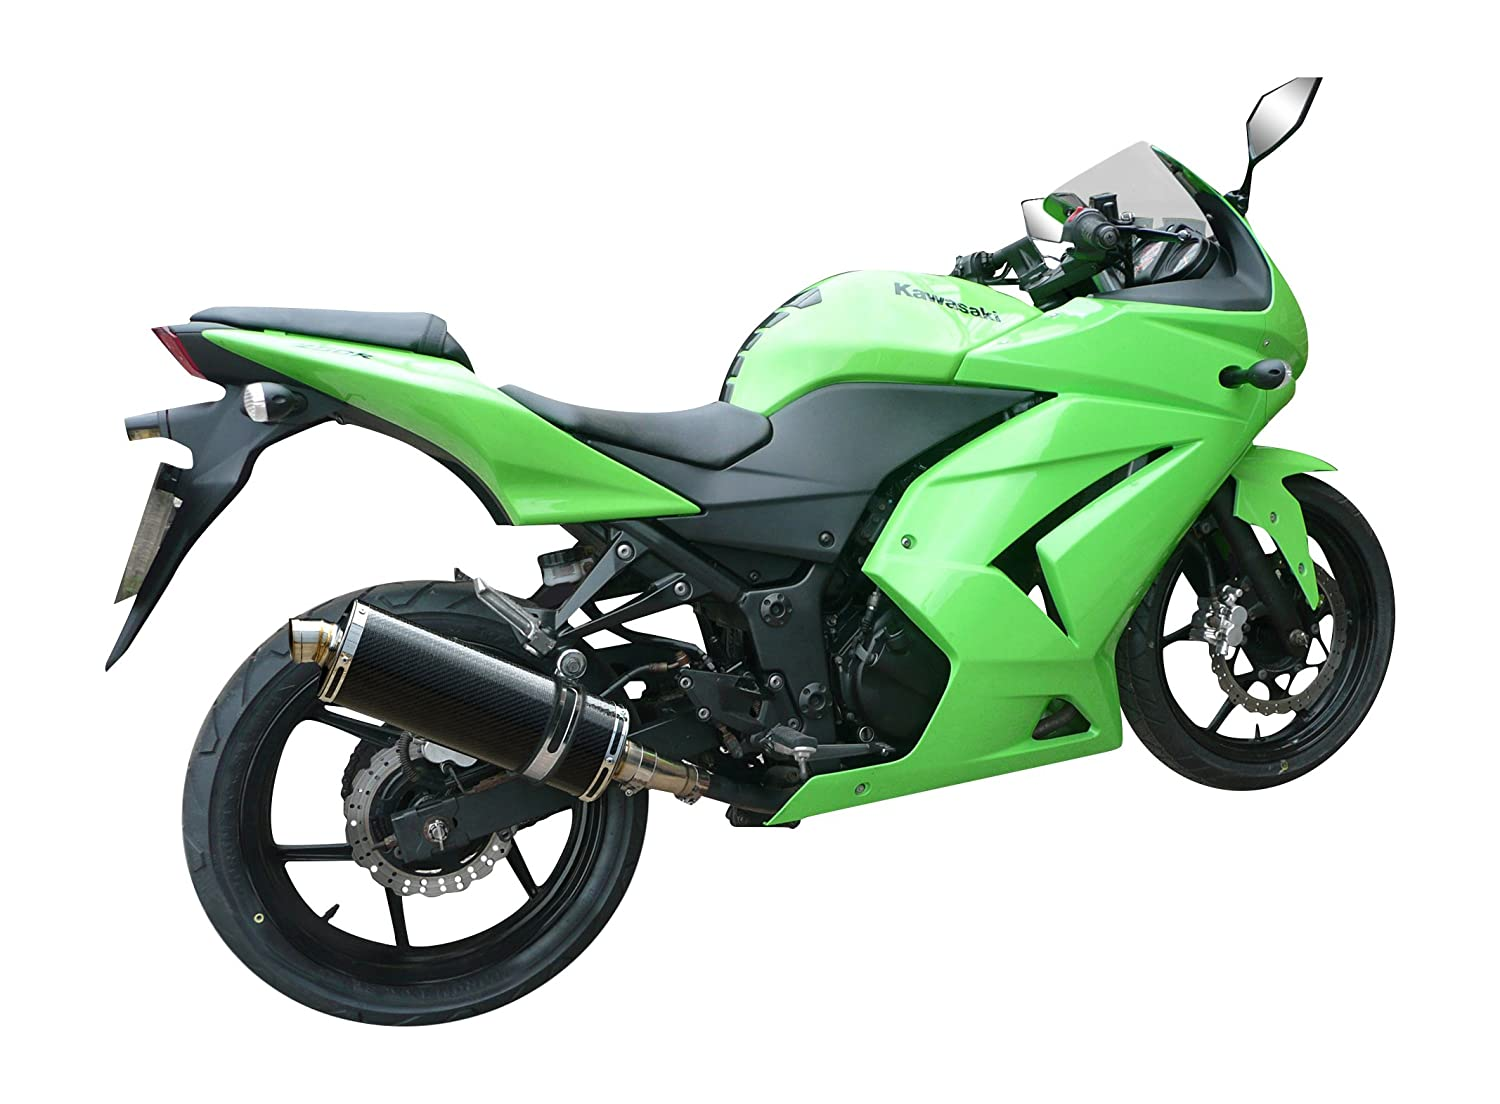 Kawasaki NINJA 250R 2008 - 2013 350 mm Carbono Road Legal ...